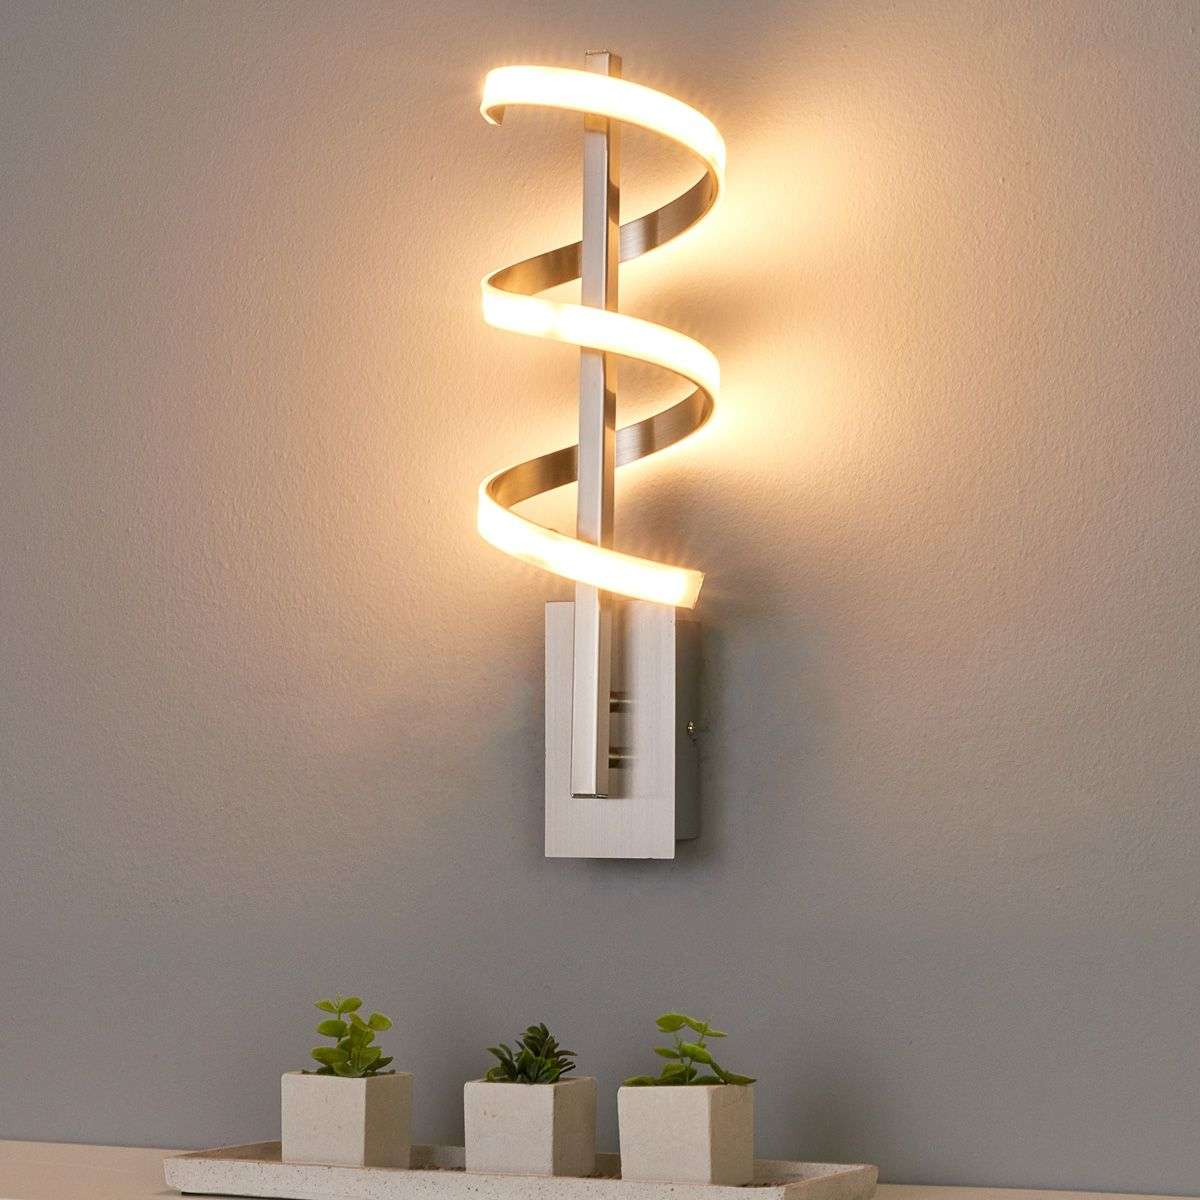 Twisted led wall light pierre lights twisted led wall light pierre aloadofball Gallery